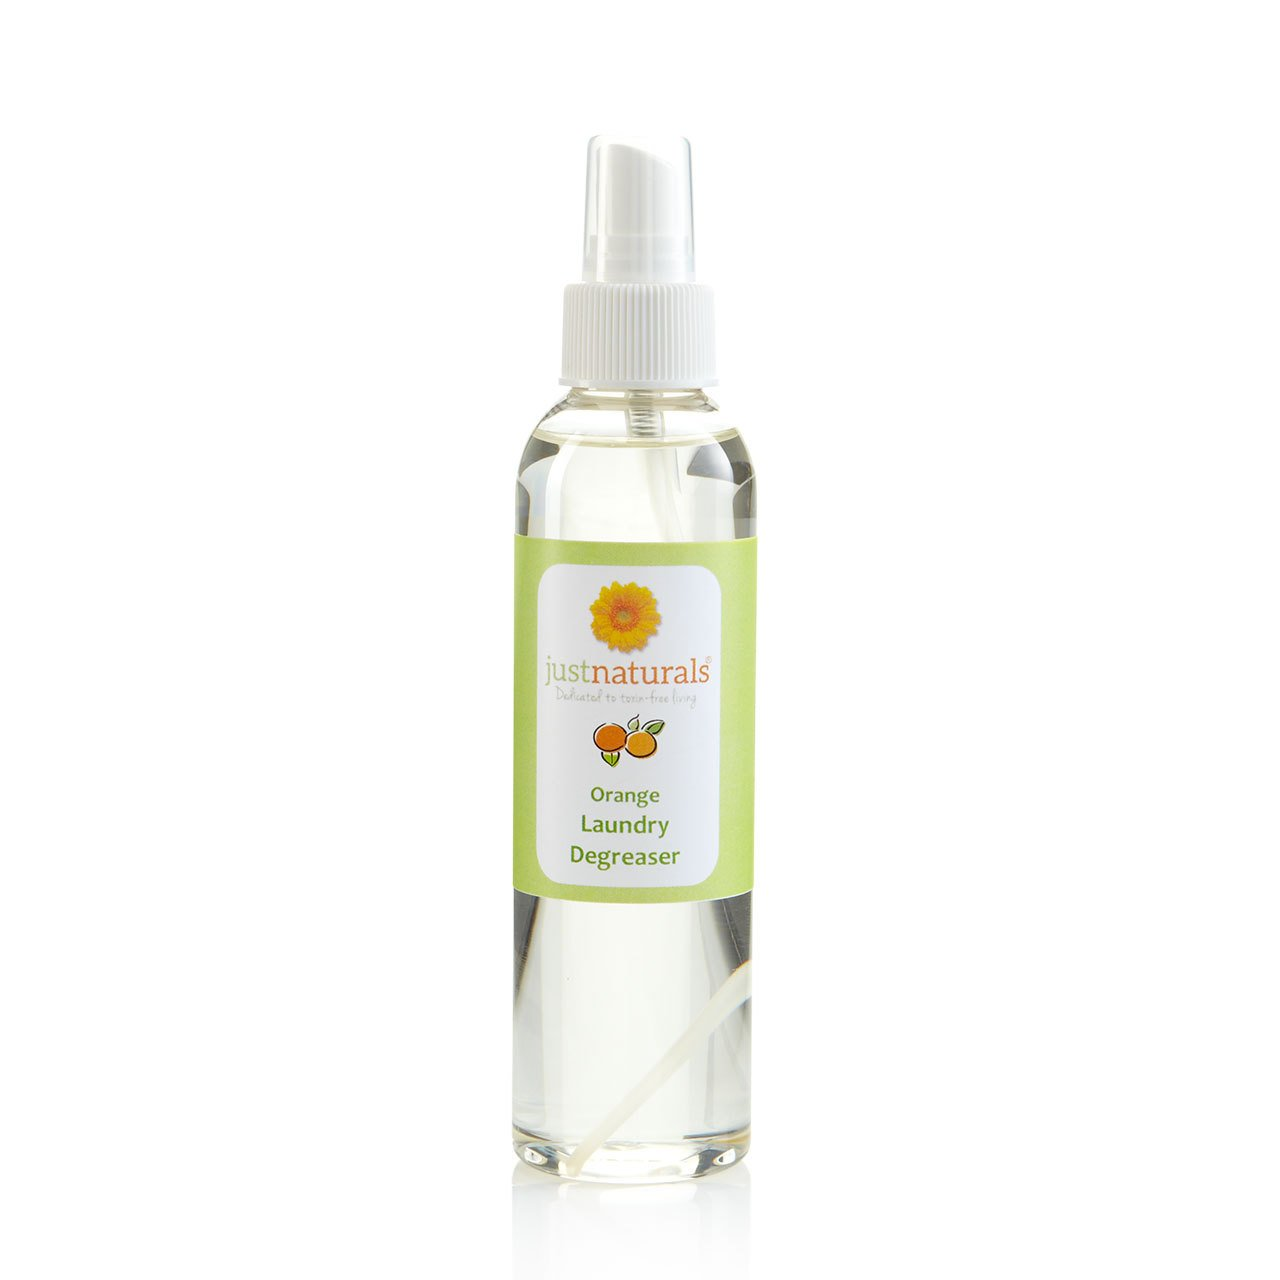 Just Naturals Orange Degreaser- Highly Effective for Cleaning and Laundry 2 oz.